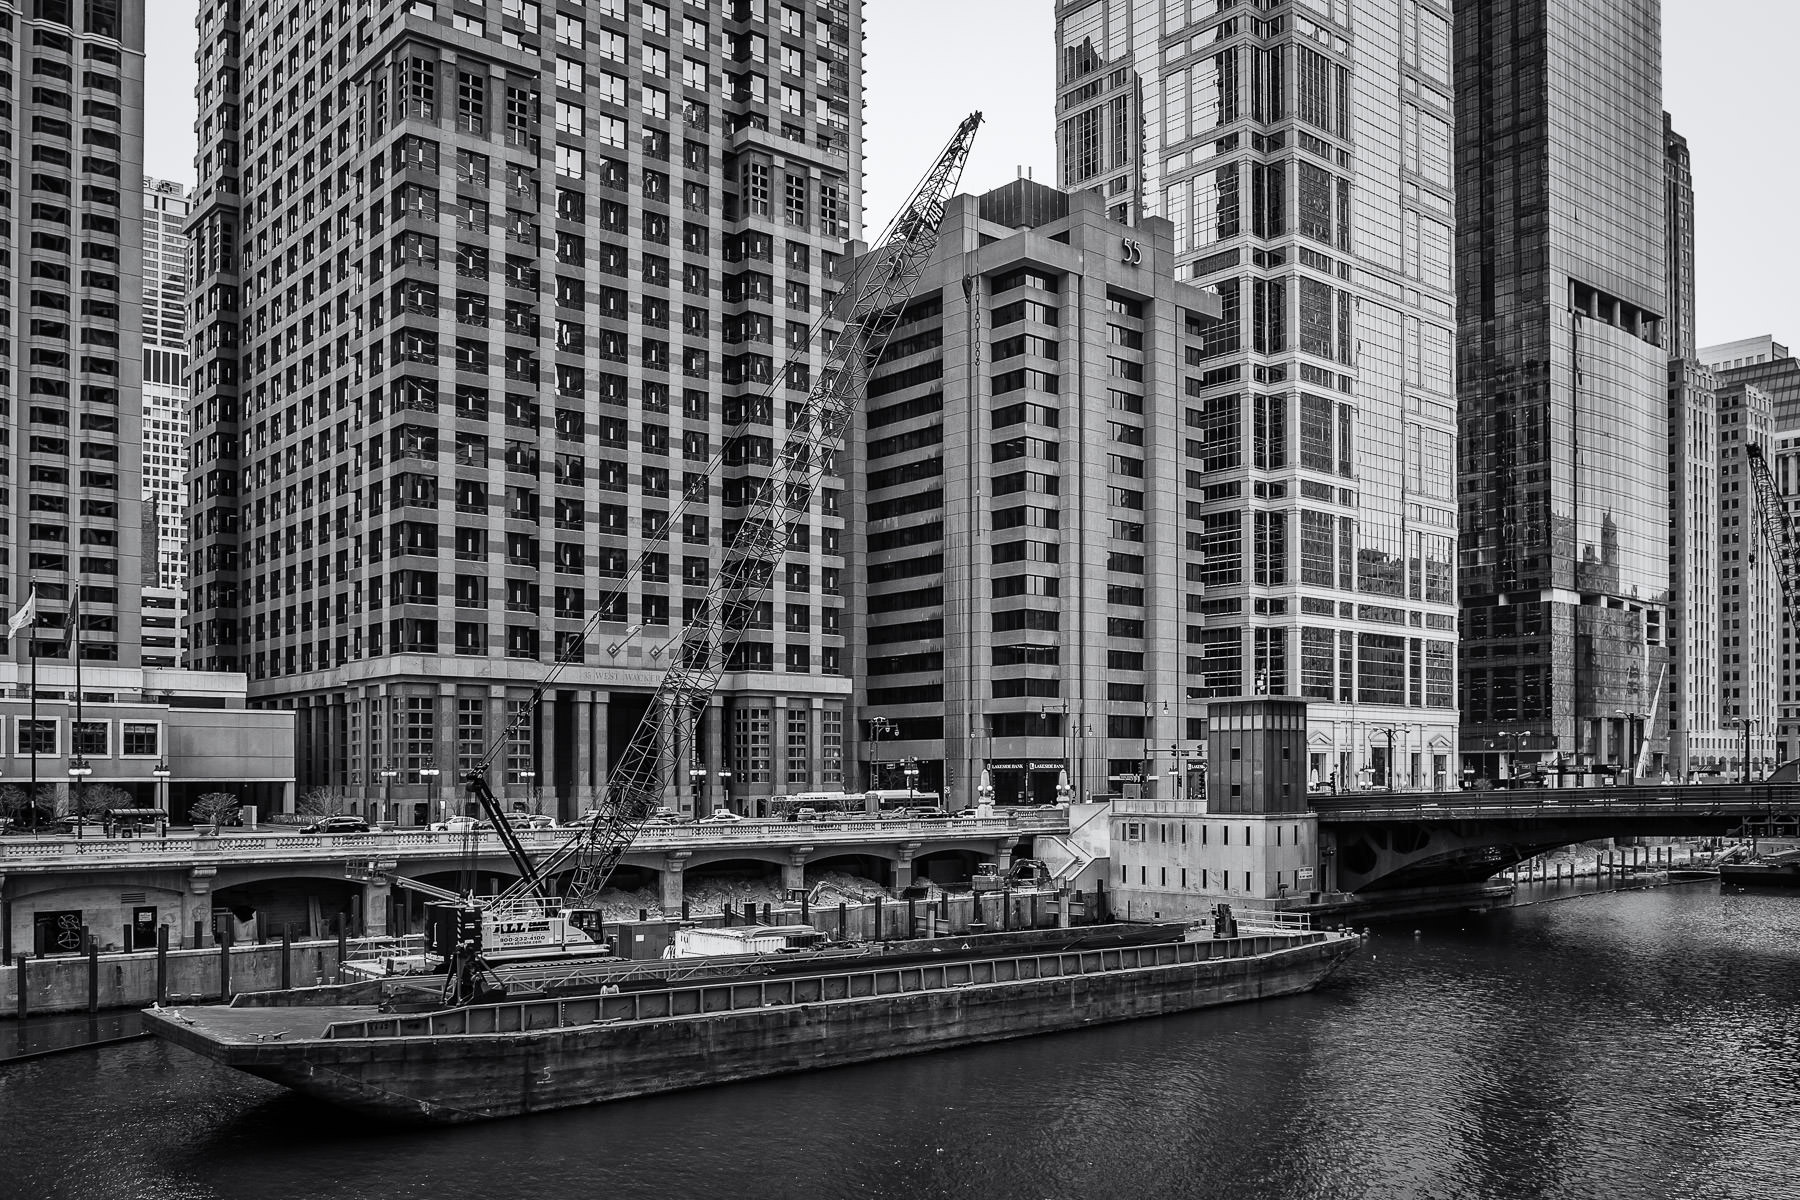 A barge with a crane atop it moored in the Chicago River adjacent to the Dearborn Street Bridge.